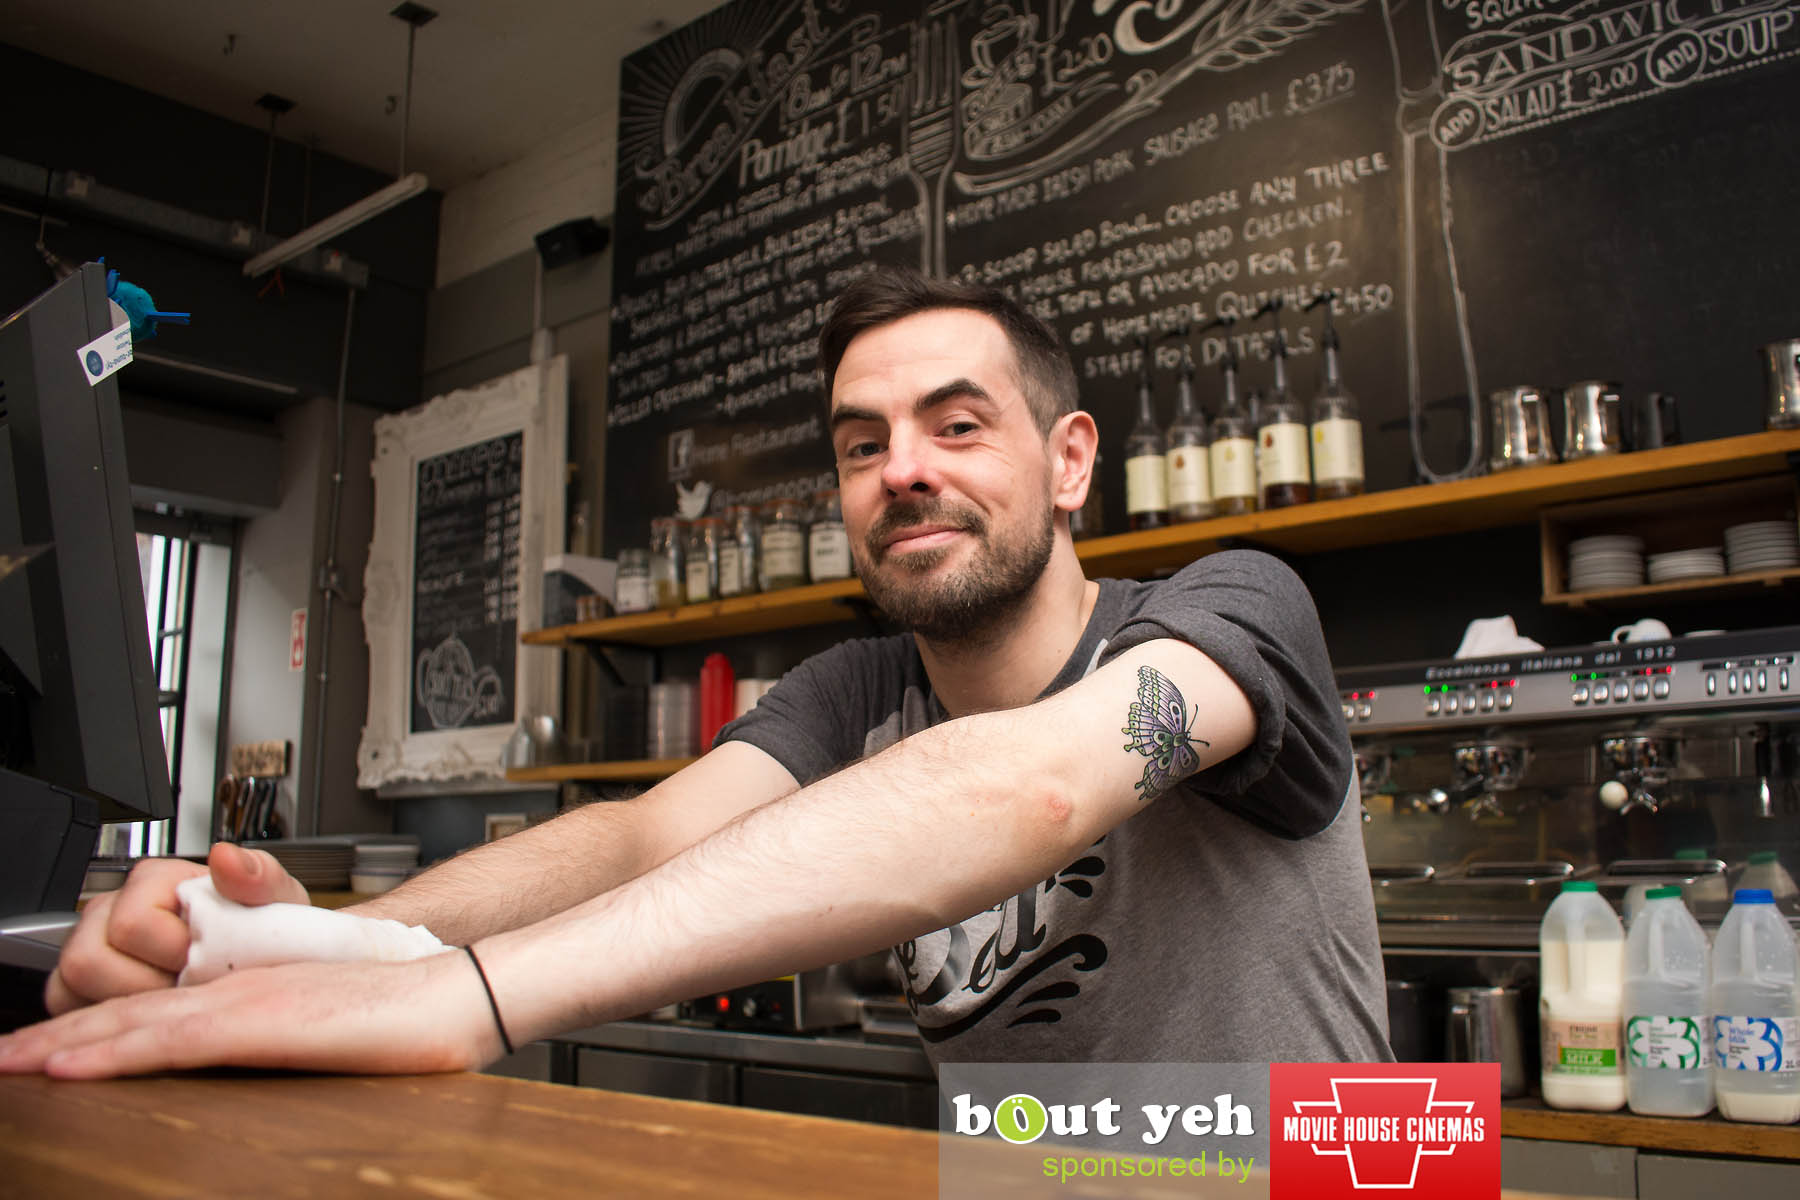 bout yeh Belfast branded sponsorship photo example 1